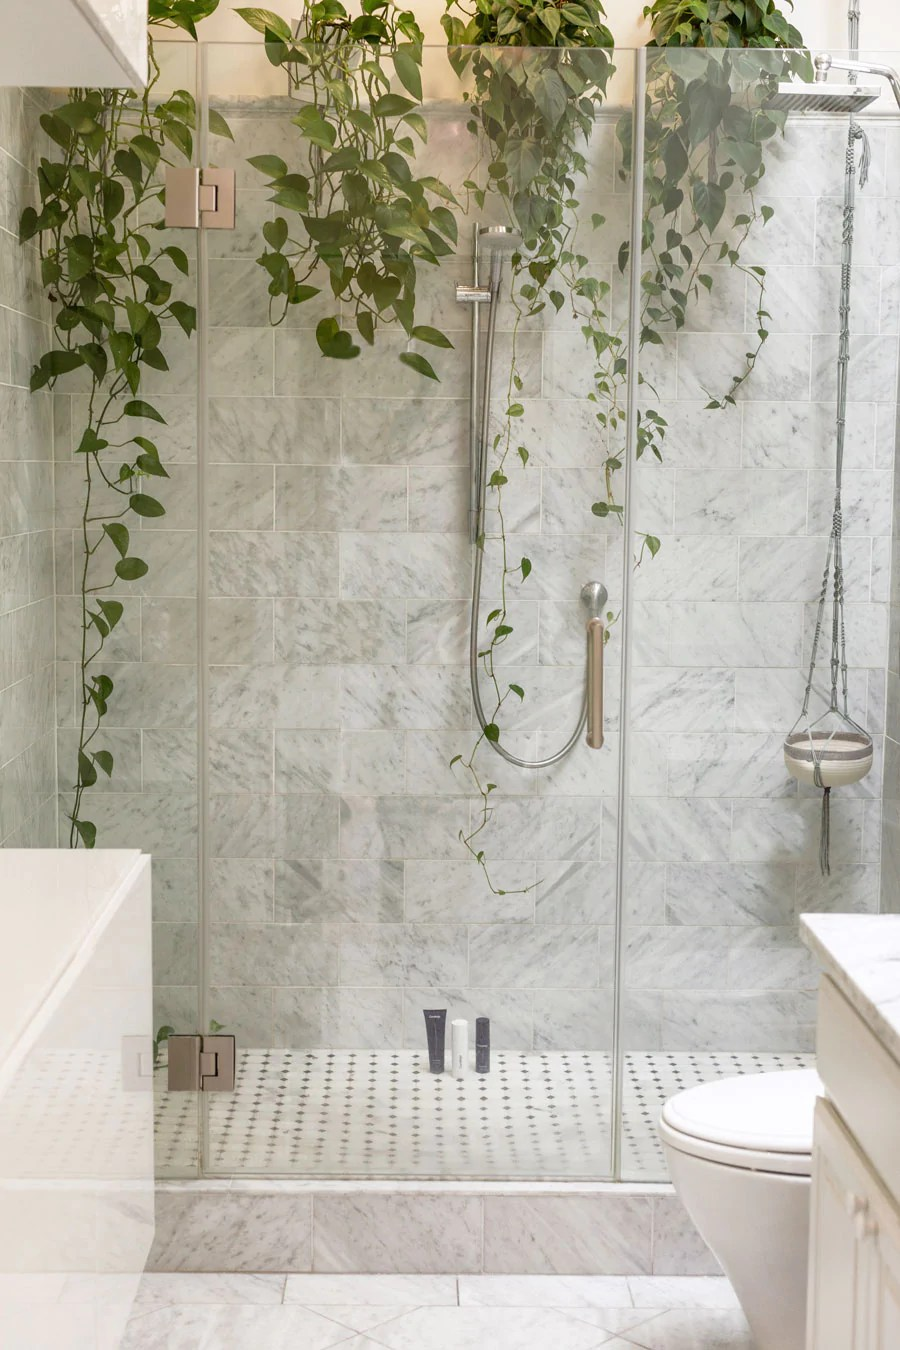 How To Keep Marble Shower Tiles Clean And Stain Free